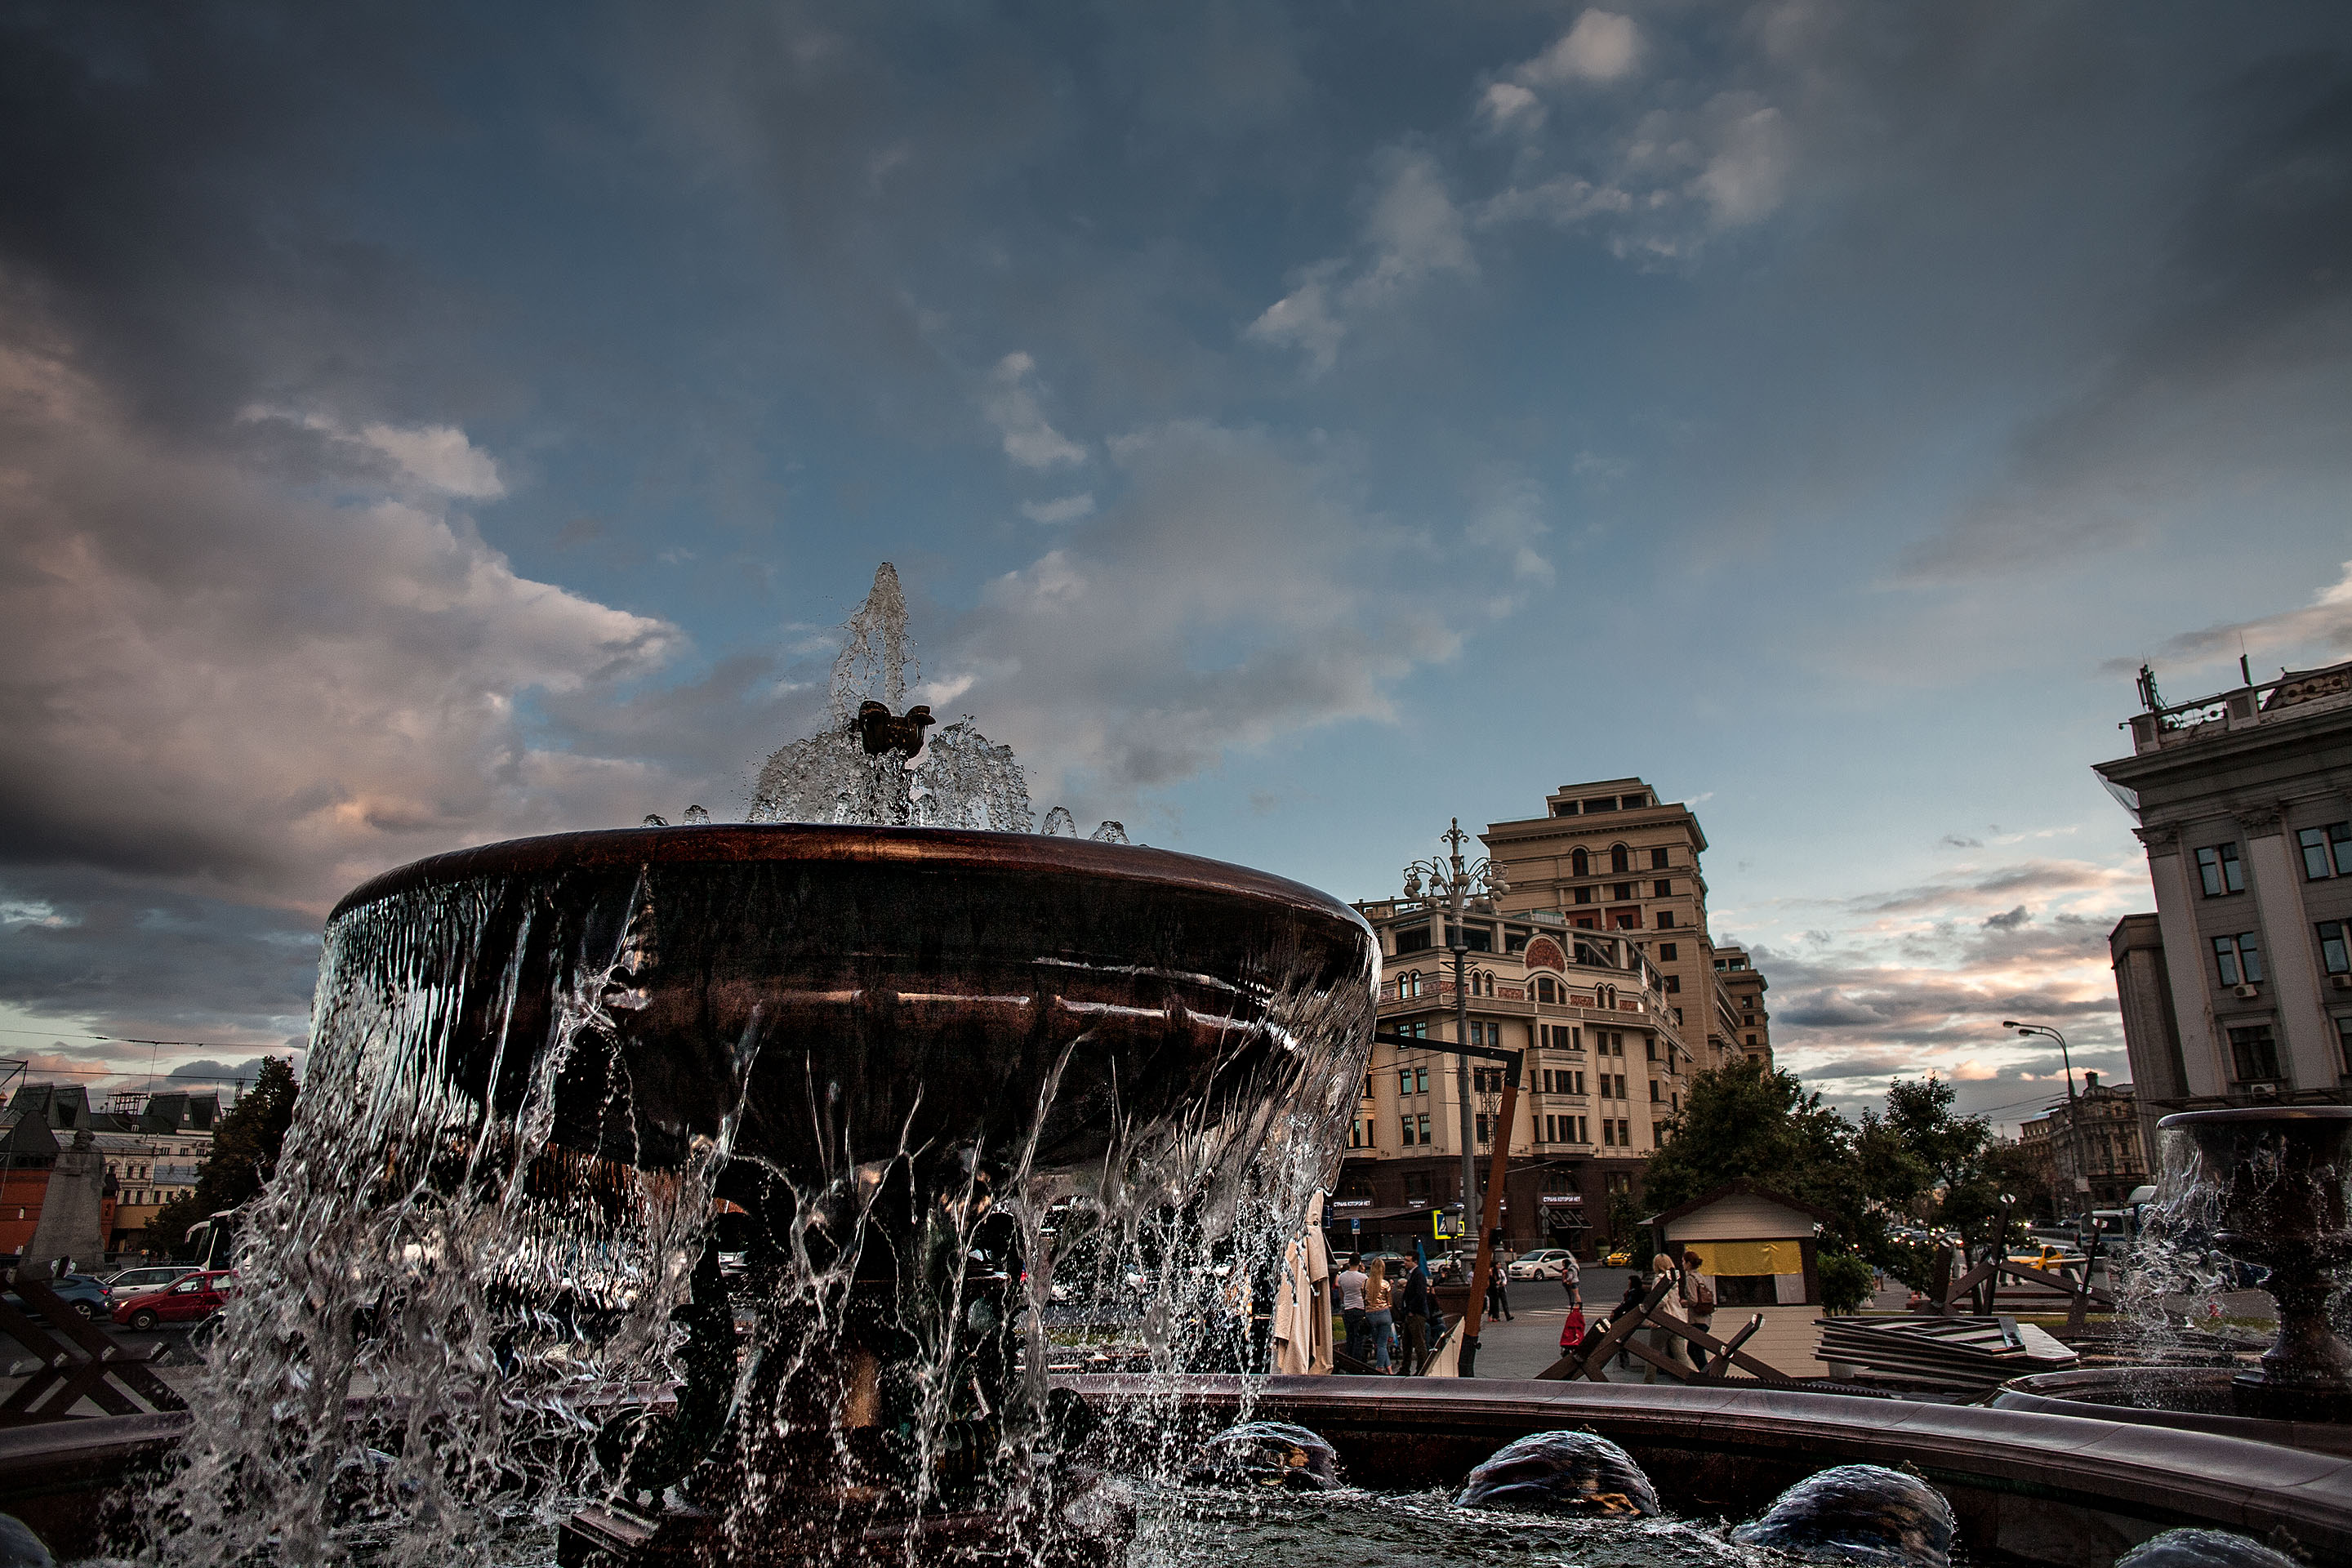 Bolshoi theater fountain, Moscow